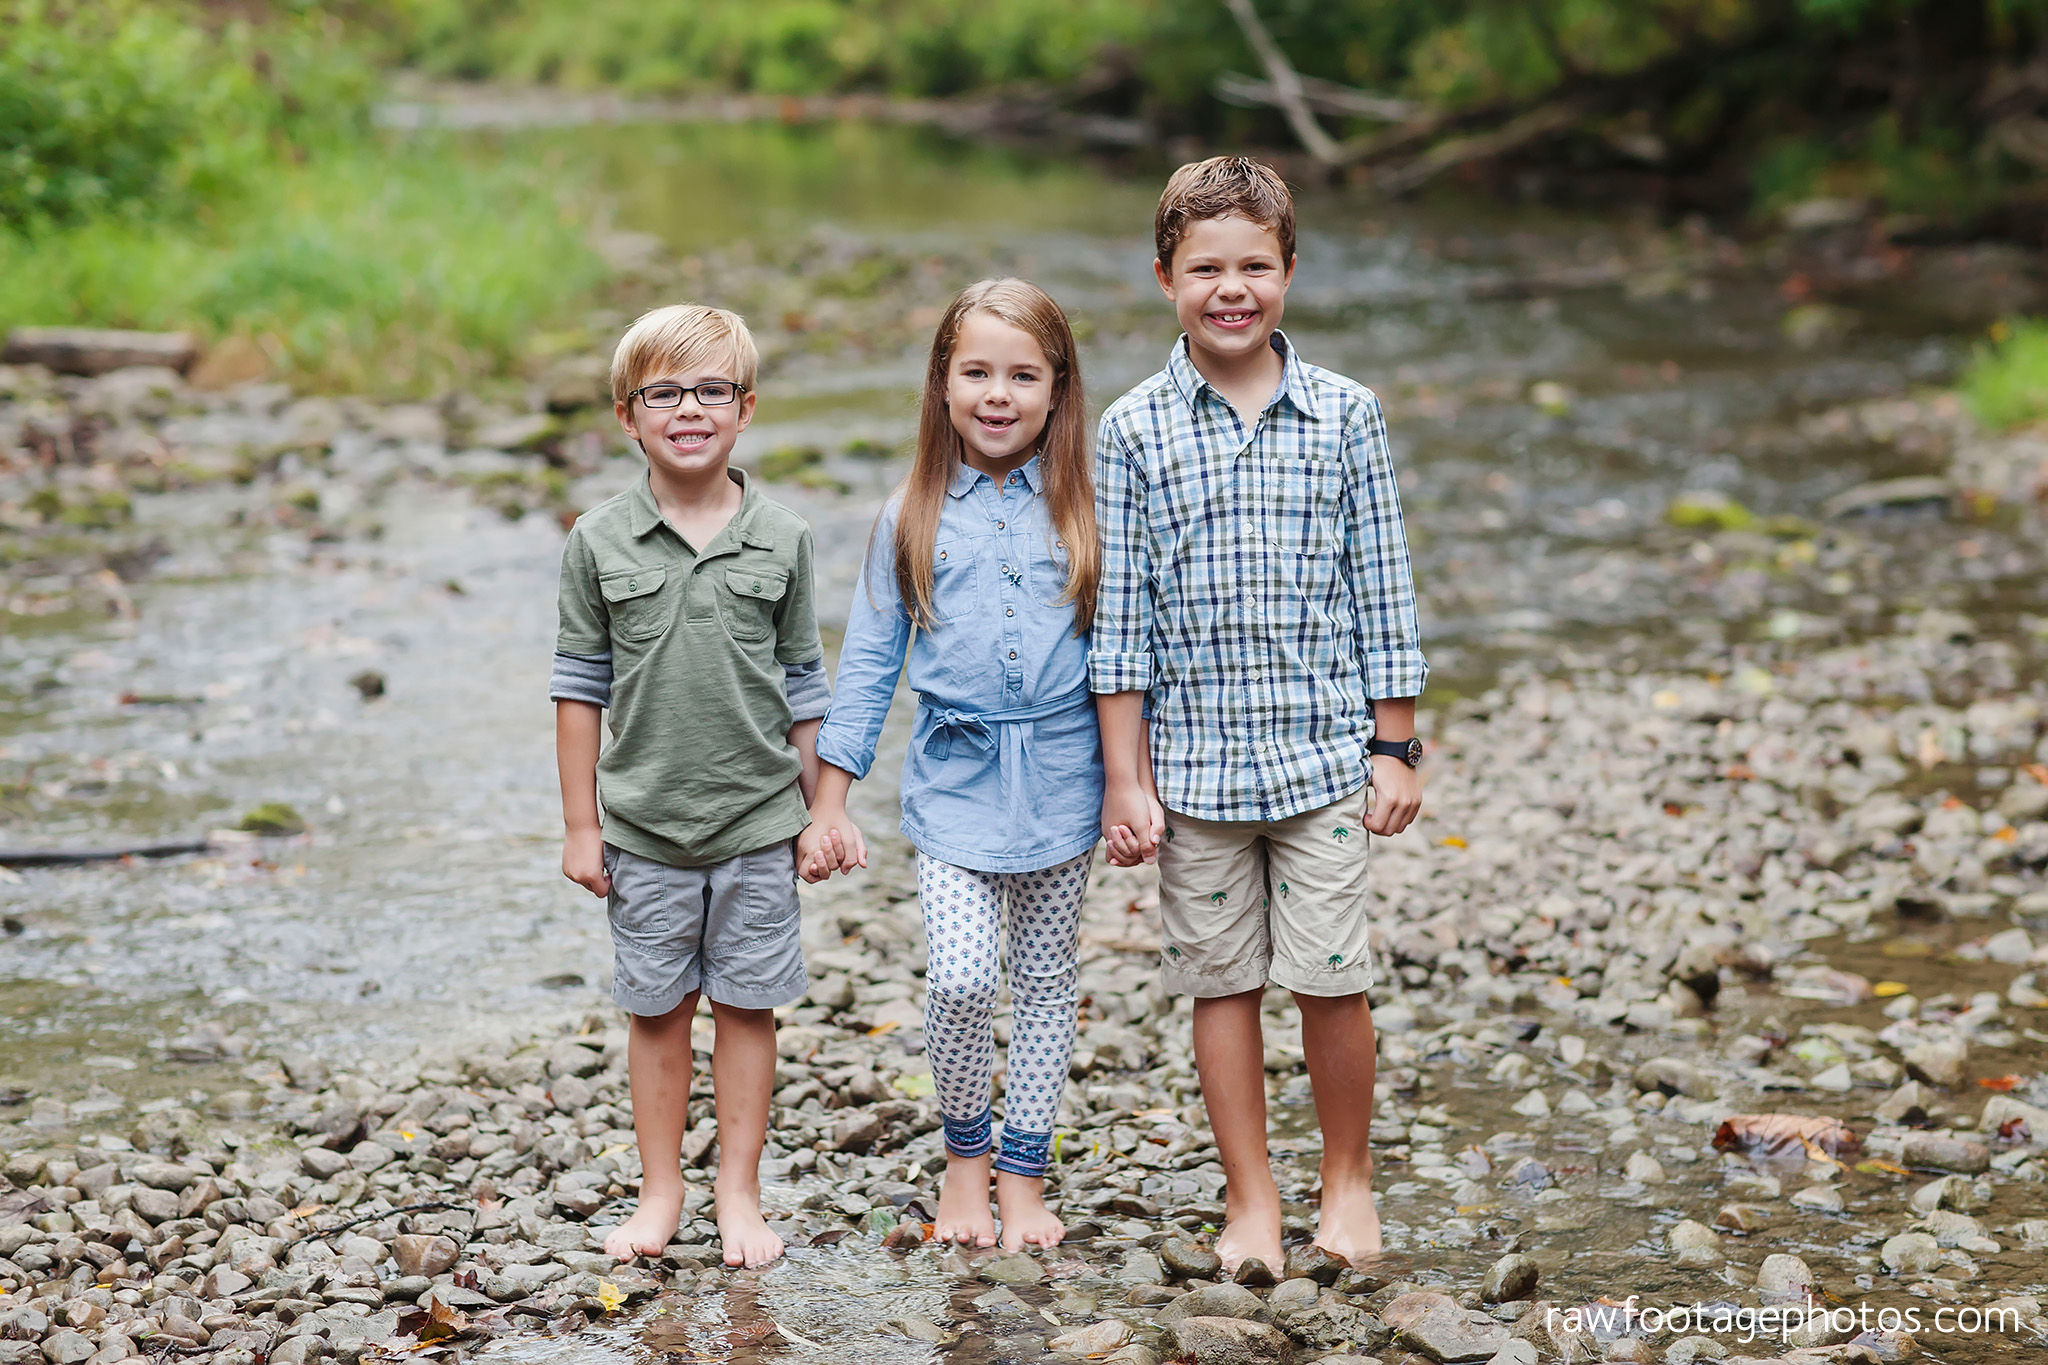 london_ontario_family_photographer-medway_creek-raw_footage_photography007.jpg